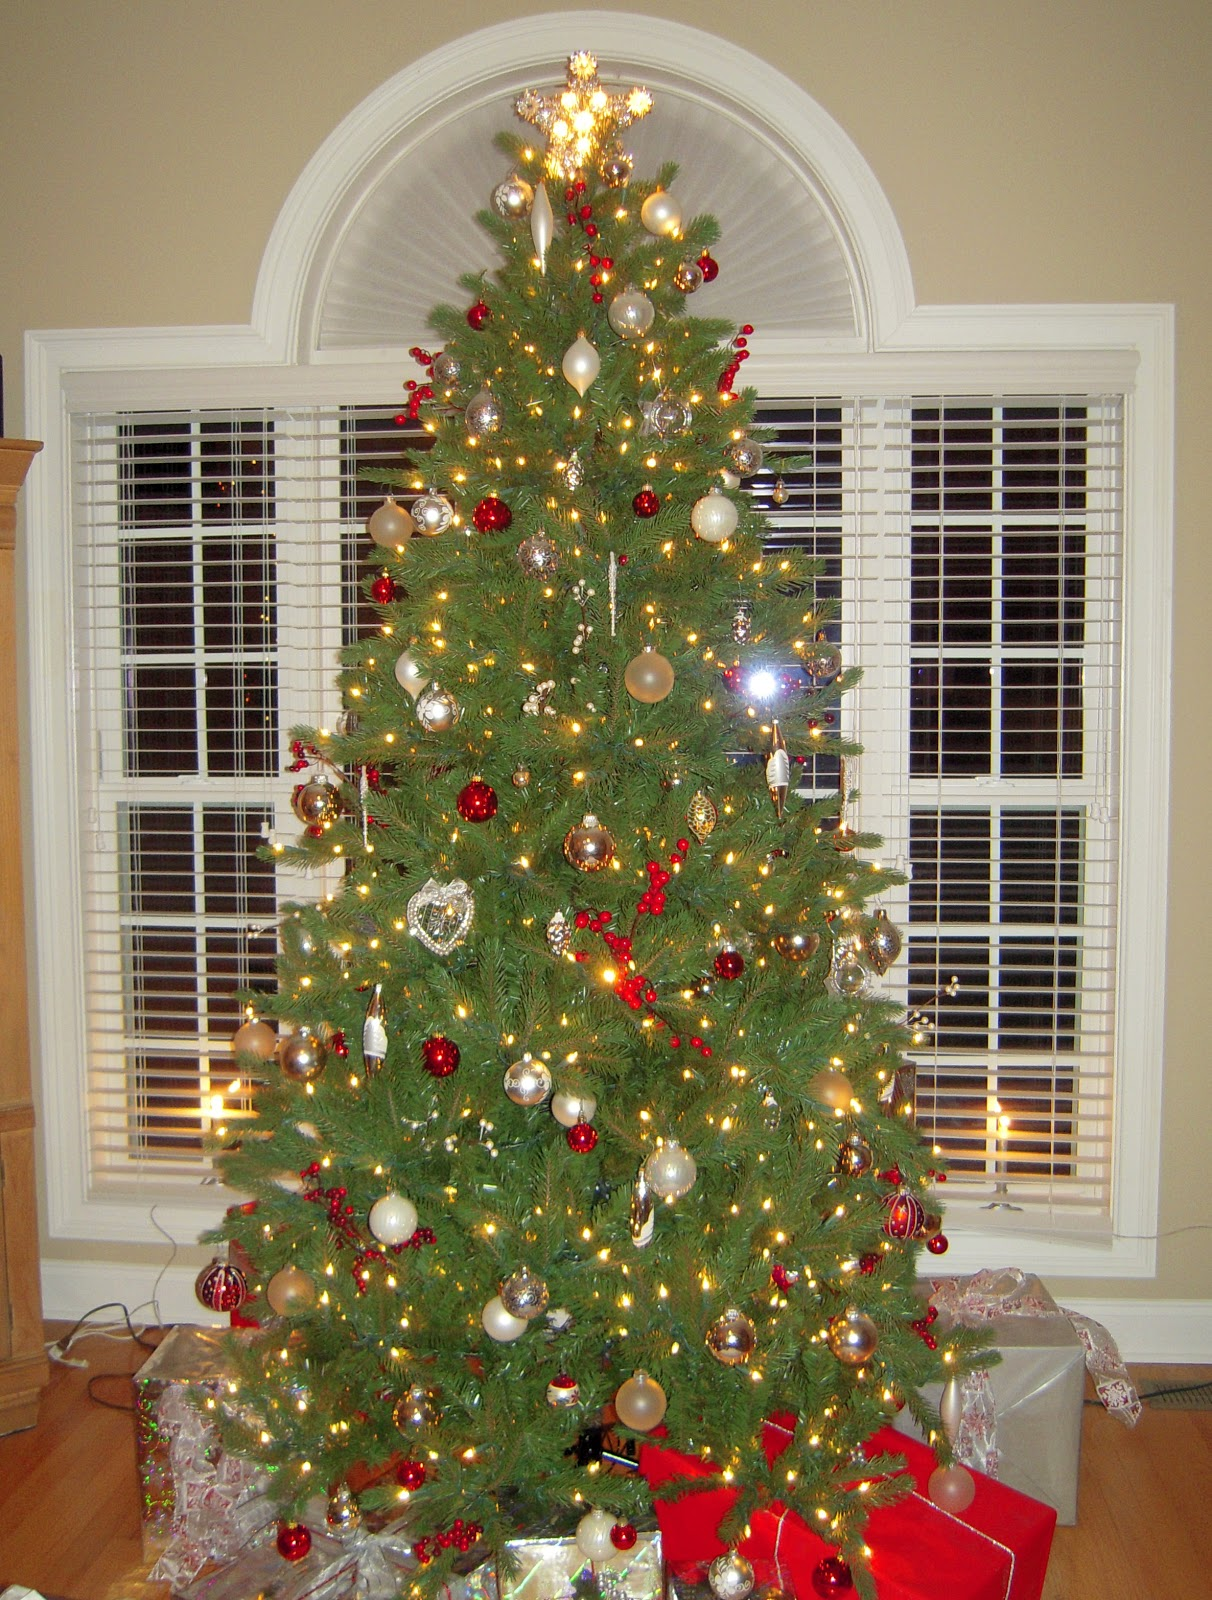 Professionally Decorated Christmas Trees